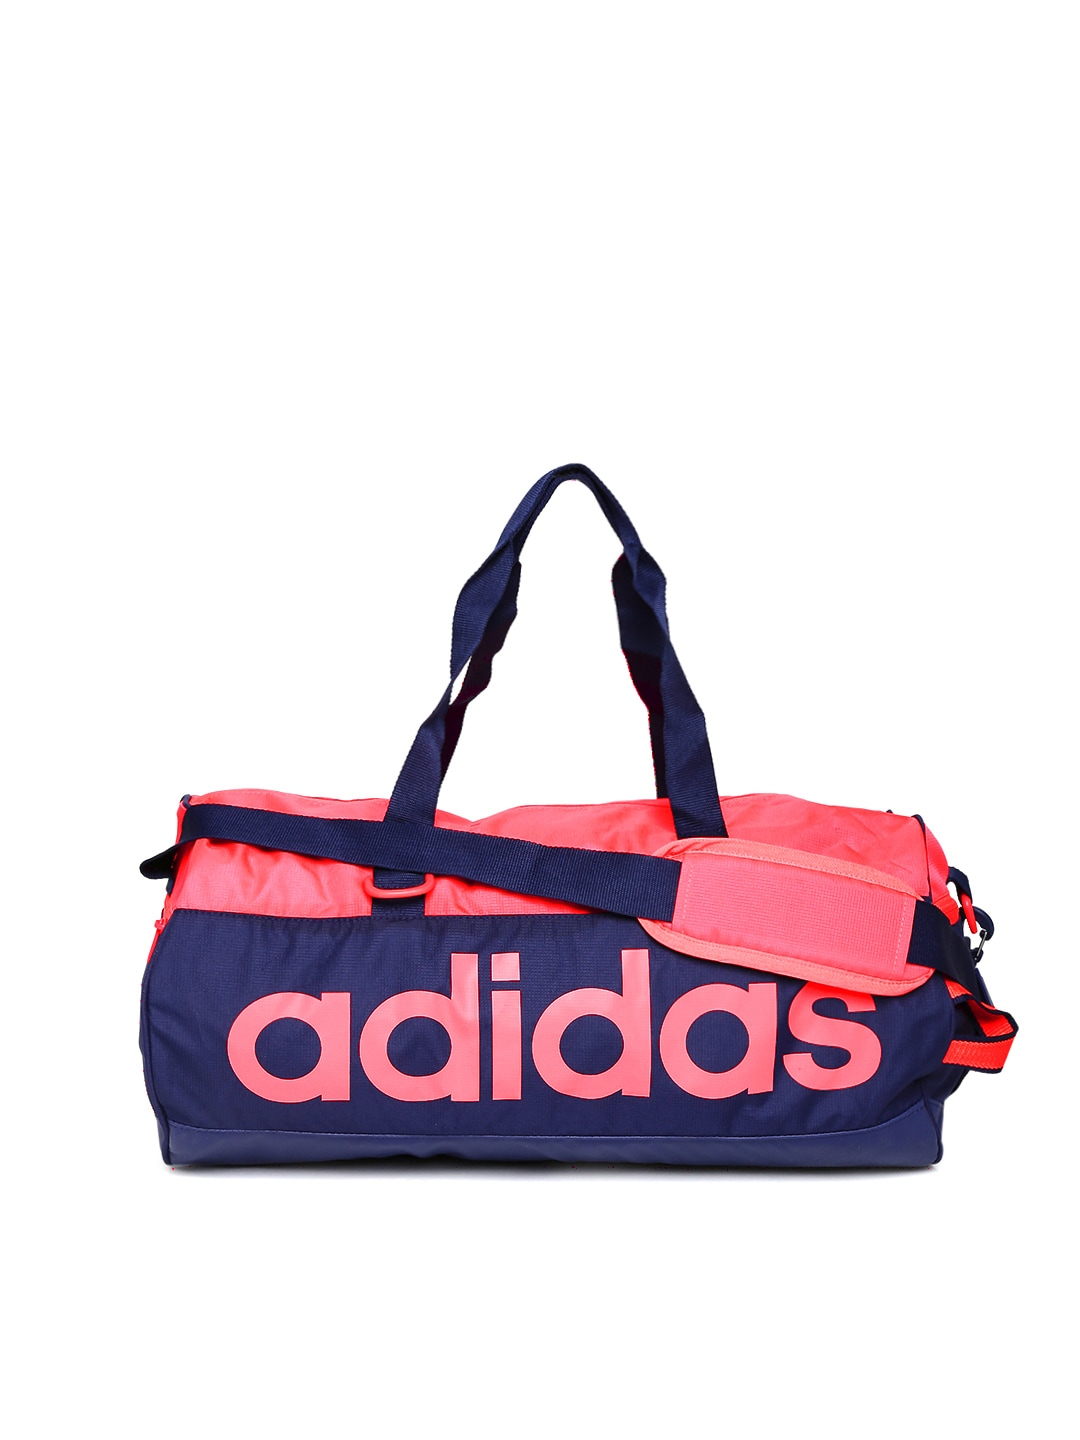 Adidas ab0691 Women Navy And Neon Pink Lin Per Tb S Duffle Bag- Price in  India bf43c2672f96e